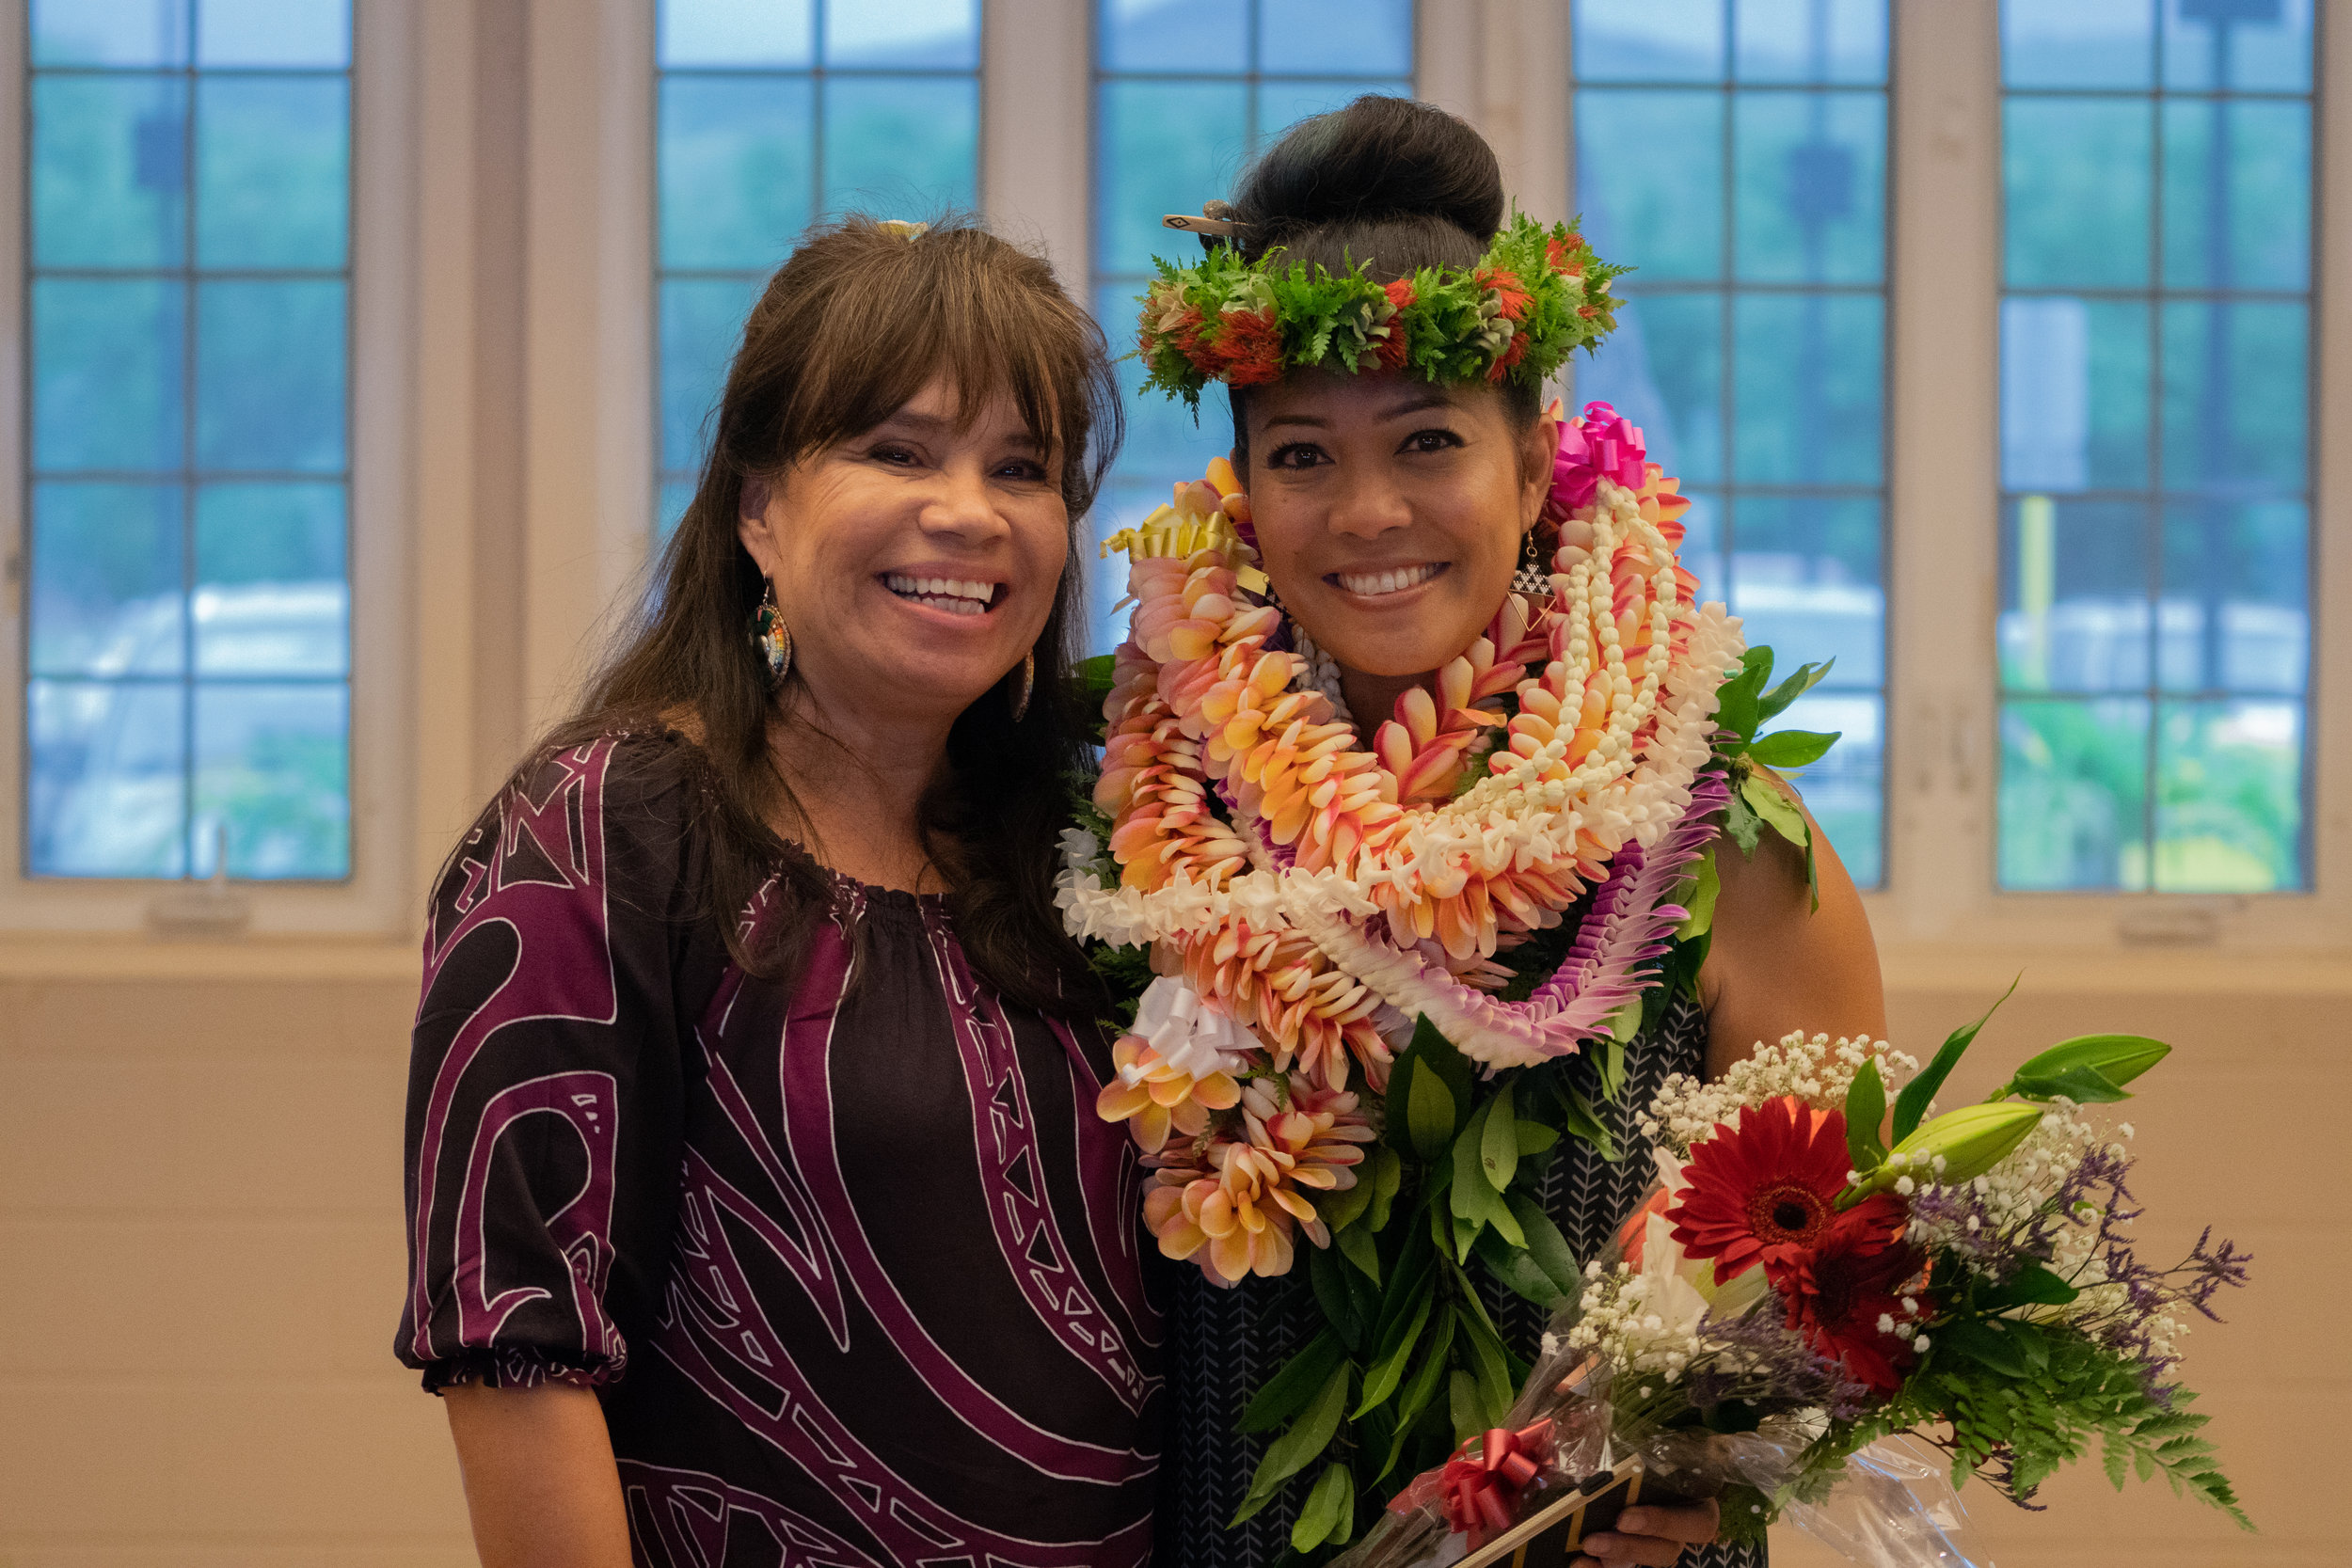 FPF President, Lori Pourier (Oglala Lakota) and 2018 Community Spirit Award Honoree, Kanoelani Davis (Native Hawaiian). Photo by Josiah Ching